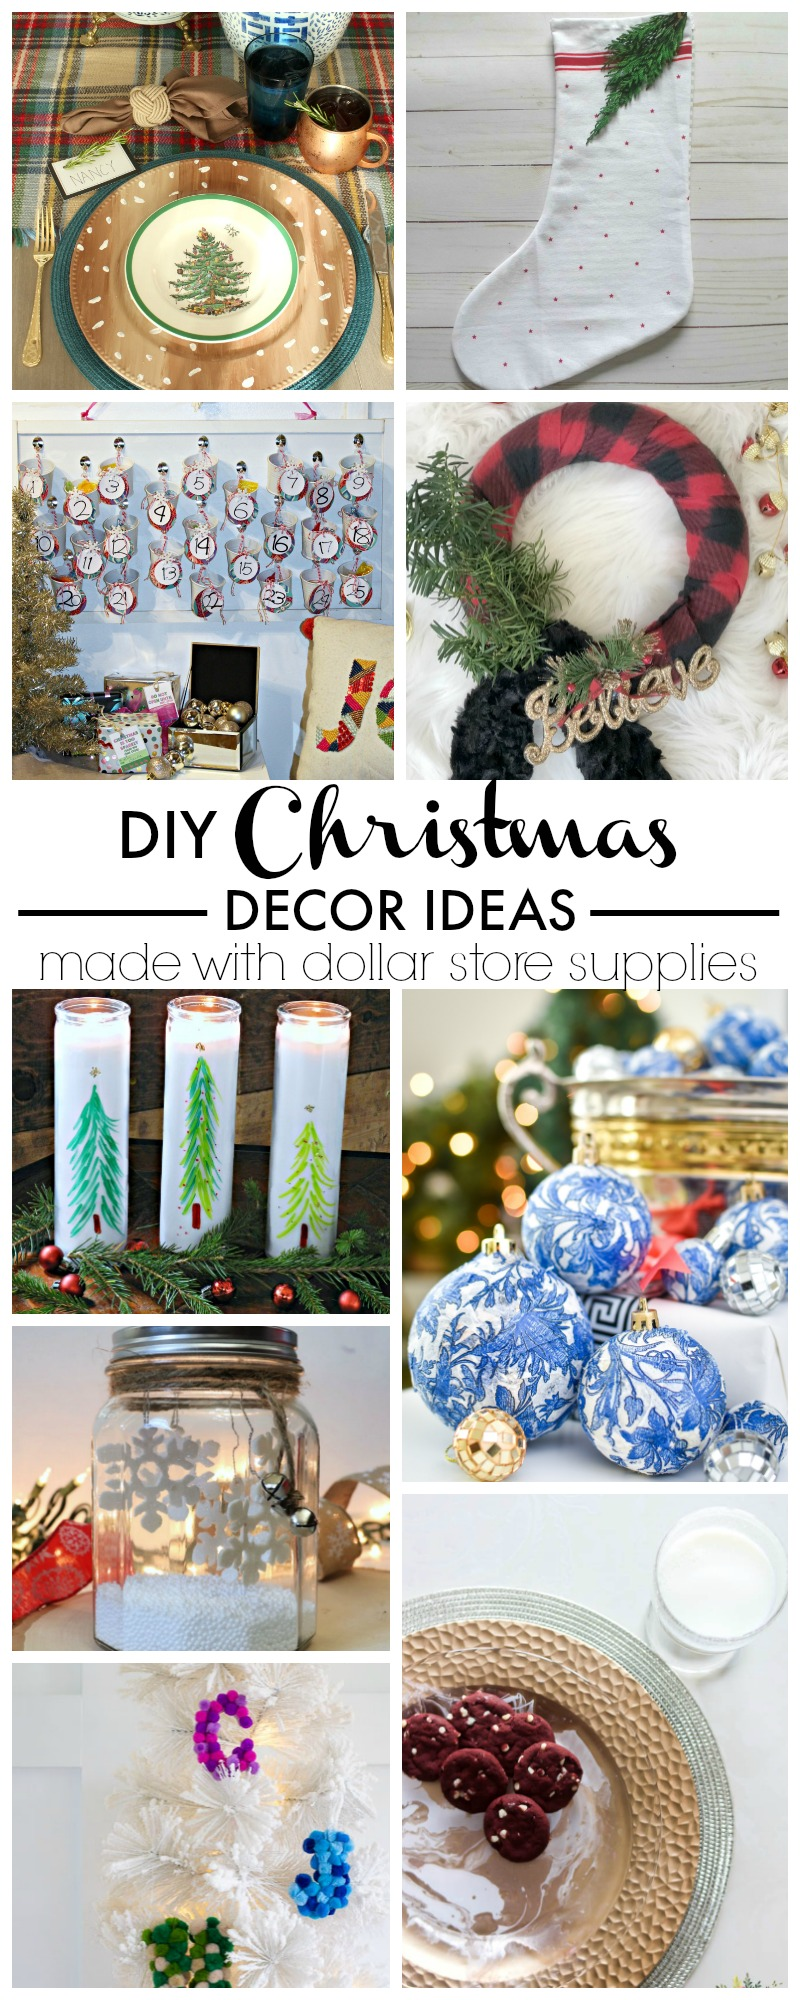 9 Holiday Decorating Ideas made with Dollar Store supplies | DIY Christmas Decor Ideas | #DollarTreeCrafts #DollarTreeDIY #DollarTreeChristmasDecor #DollarChristmasDecorIdeas #DollarChristmasDecorDIYCrafts